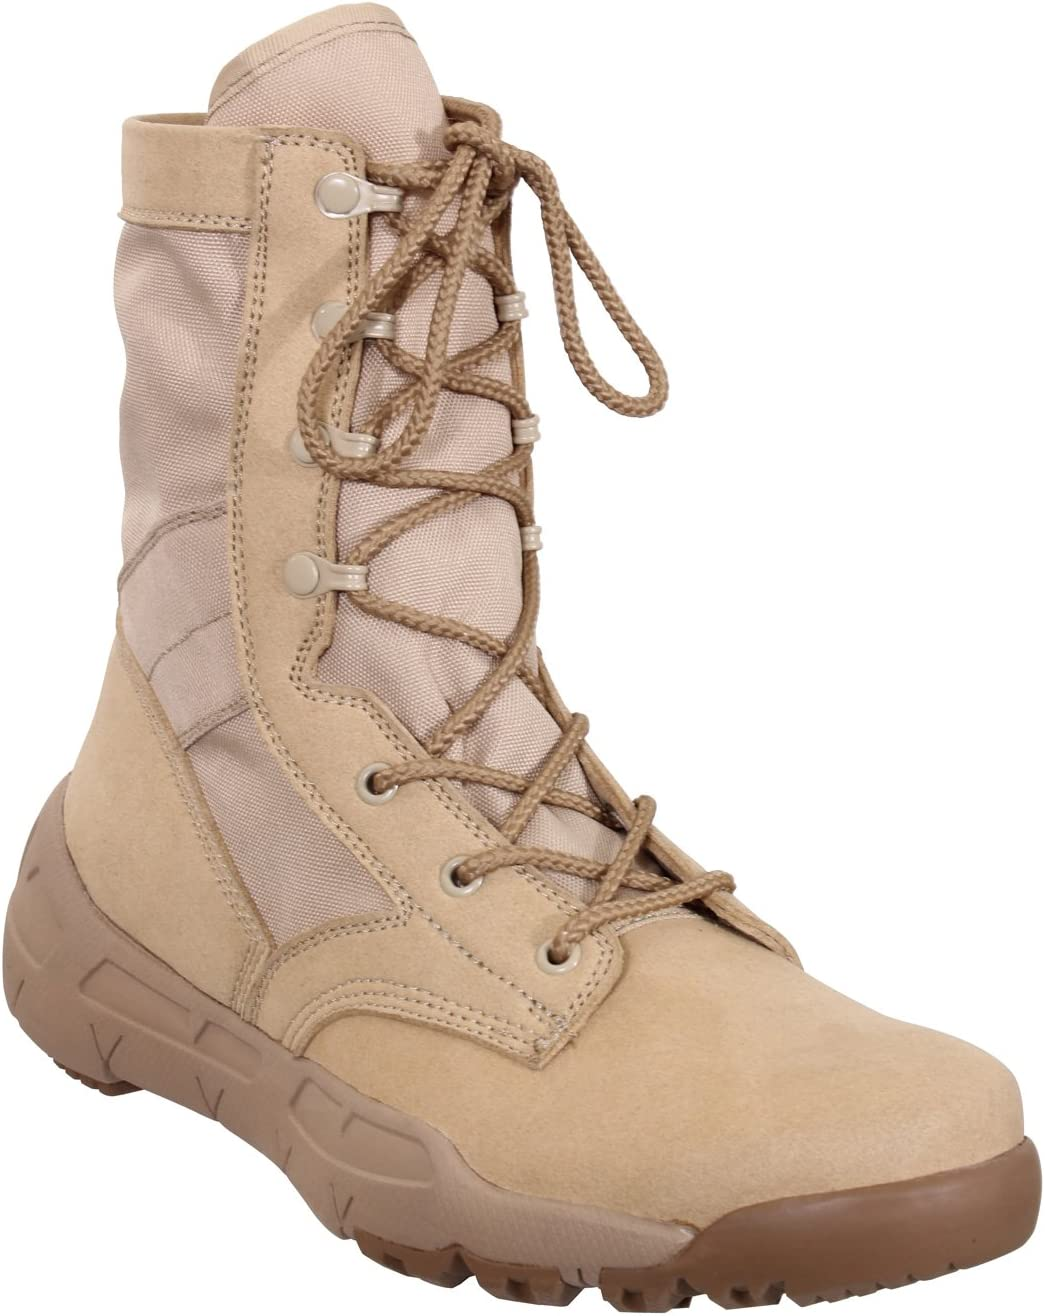 Rothco V-Max Max 43% OFF Lightweight low-pricing Boot Tactical